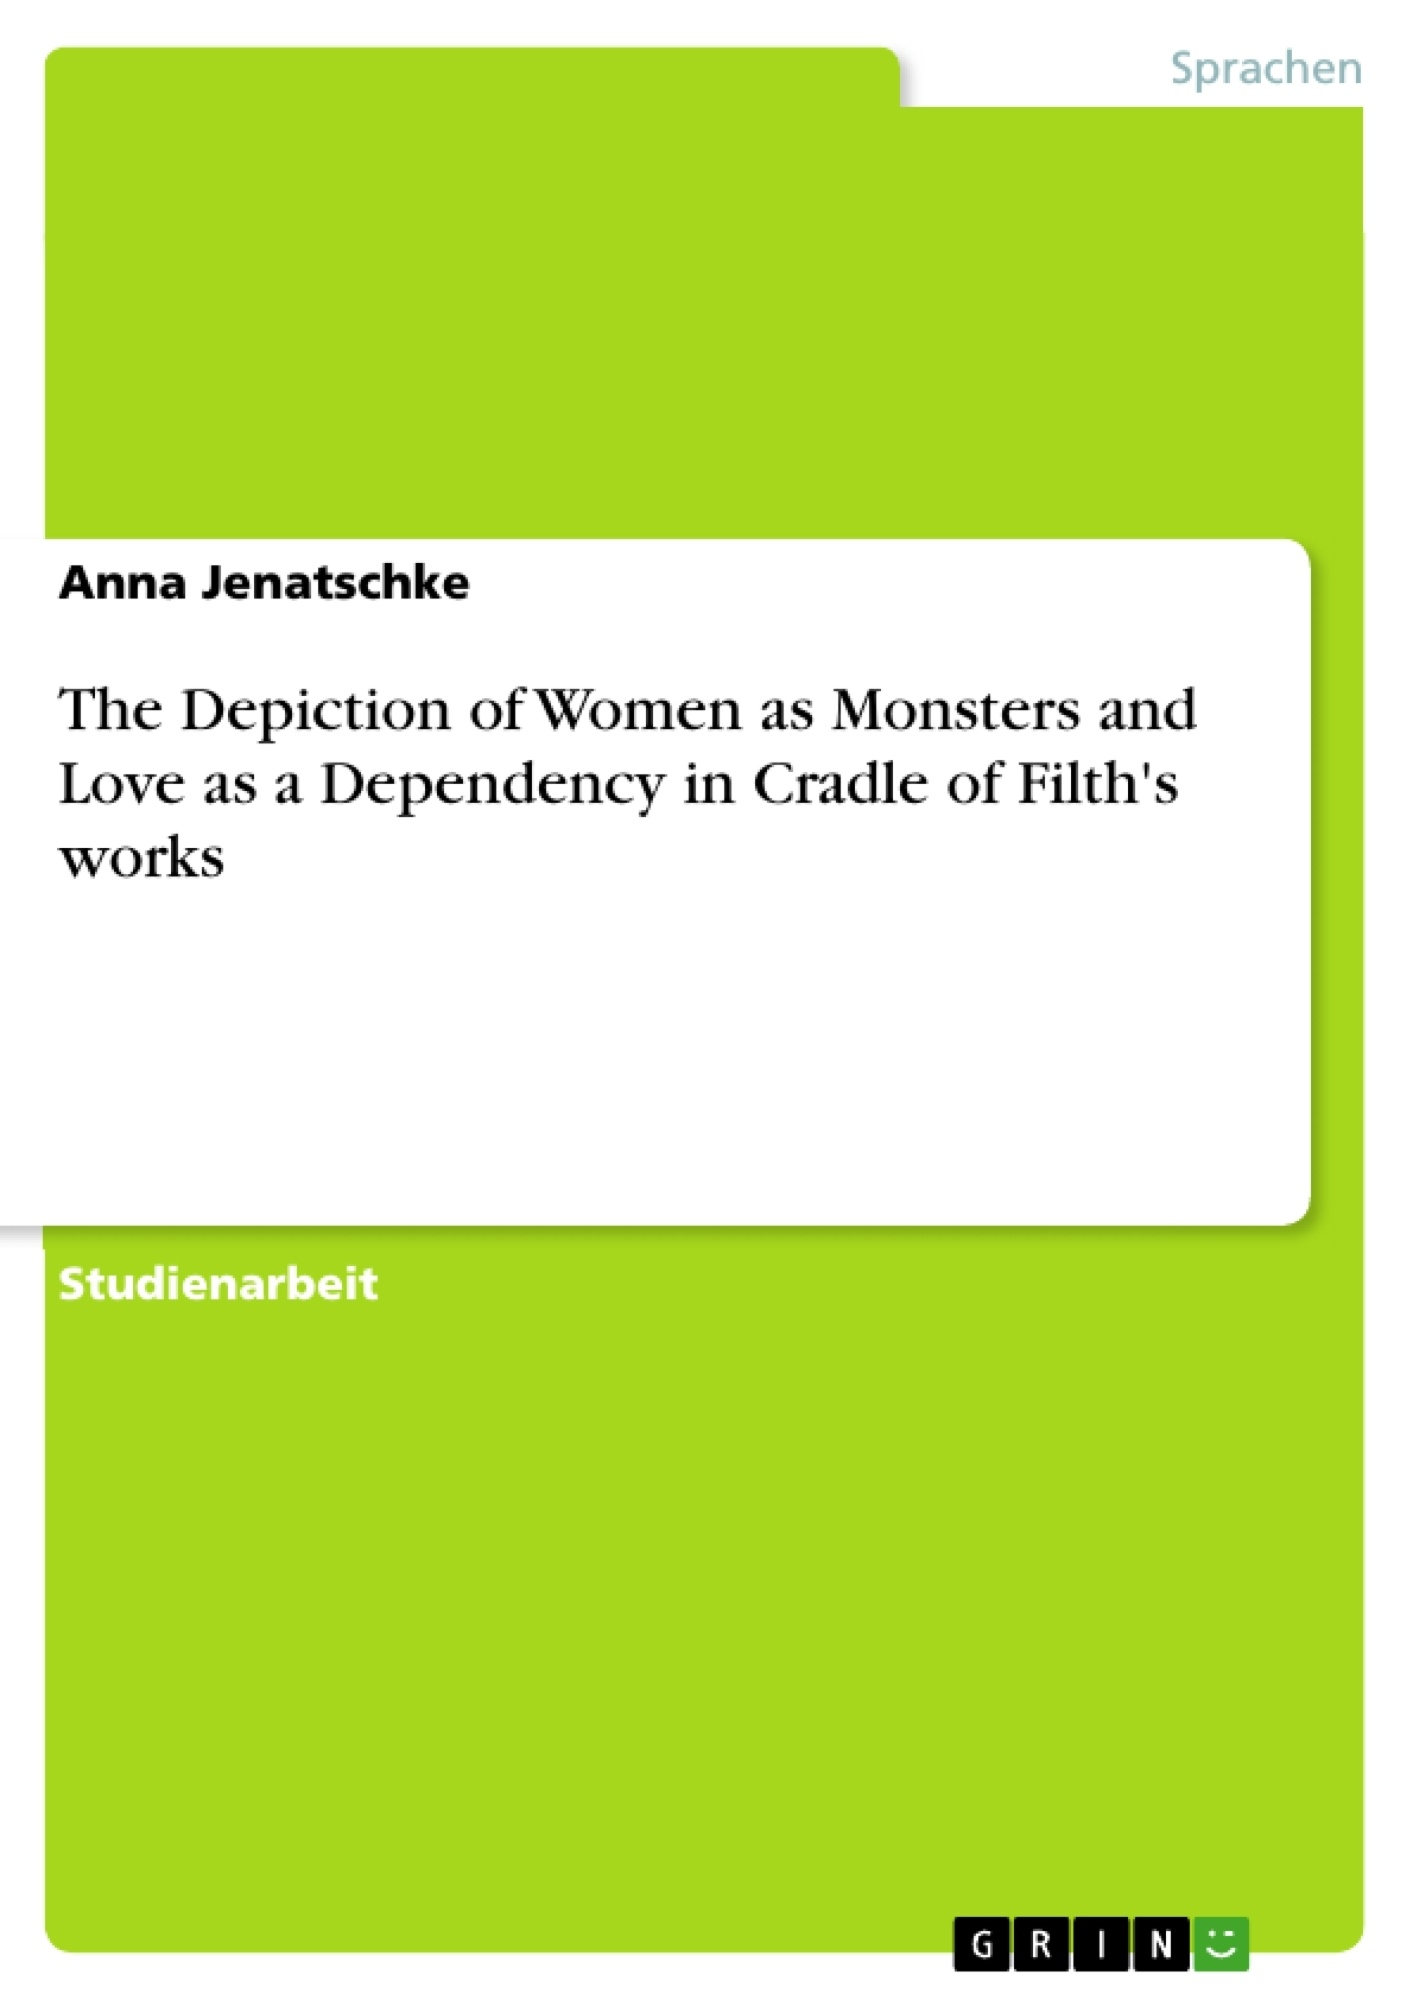 Titel: The Depiction of Women as Monsters and Love as a Dependency in Cradle of Filth's works